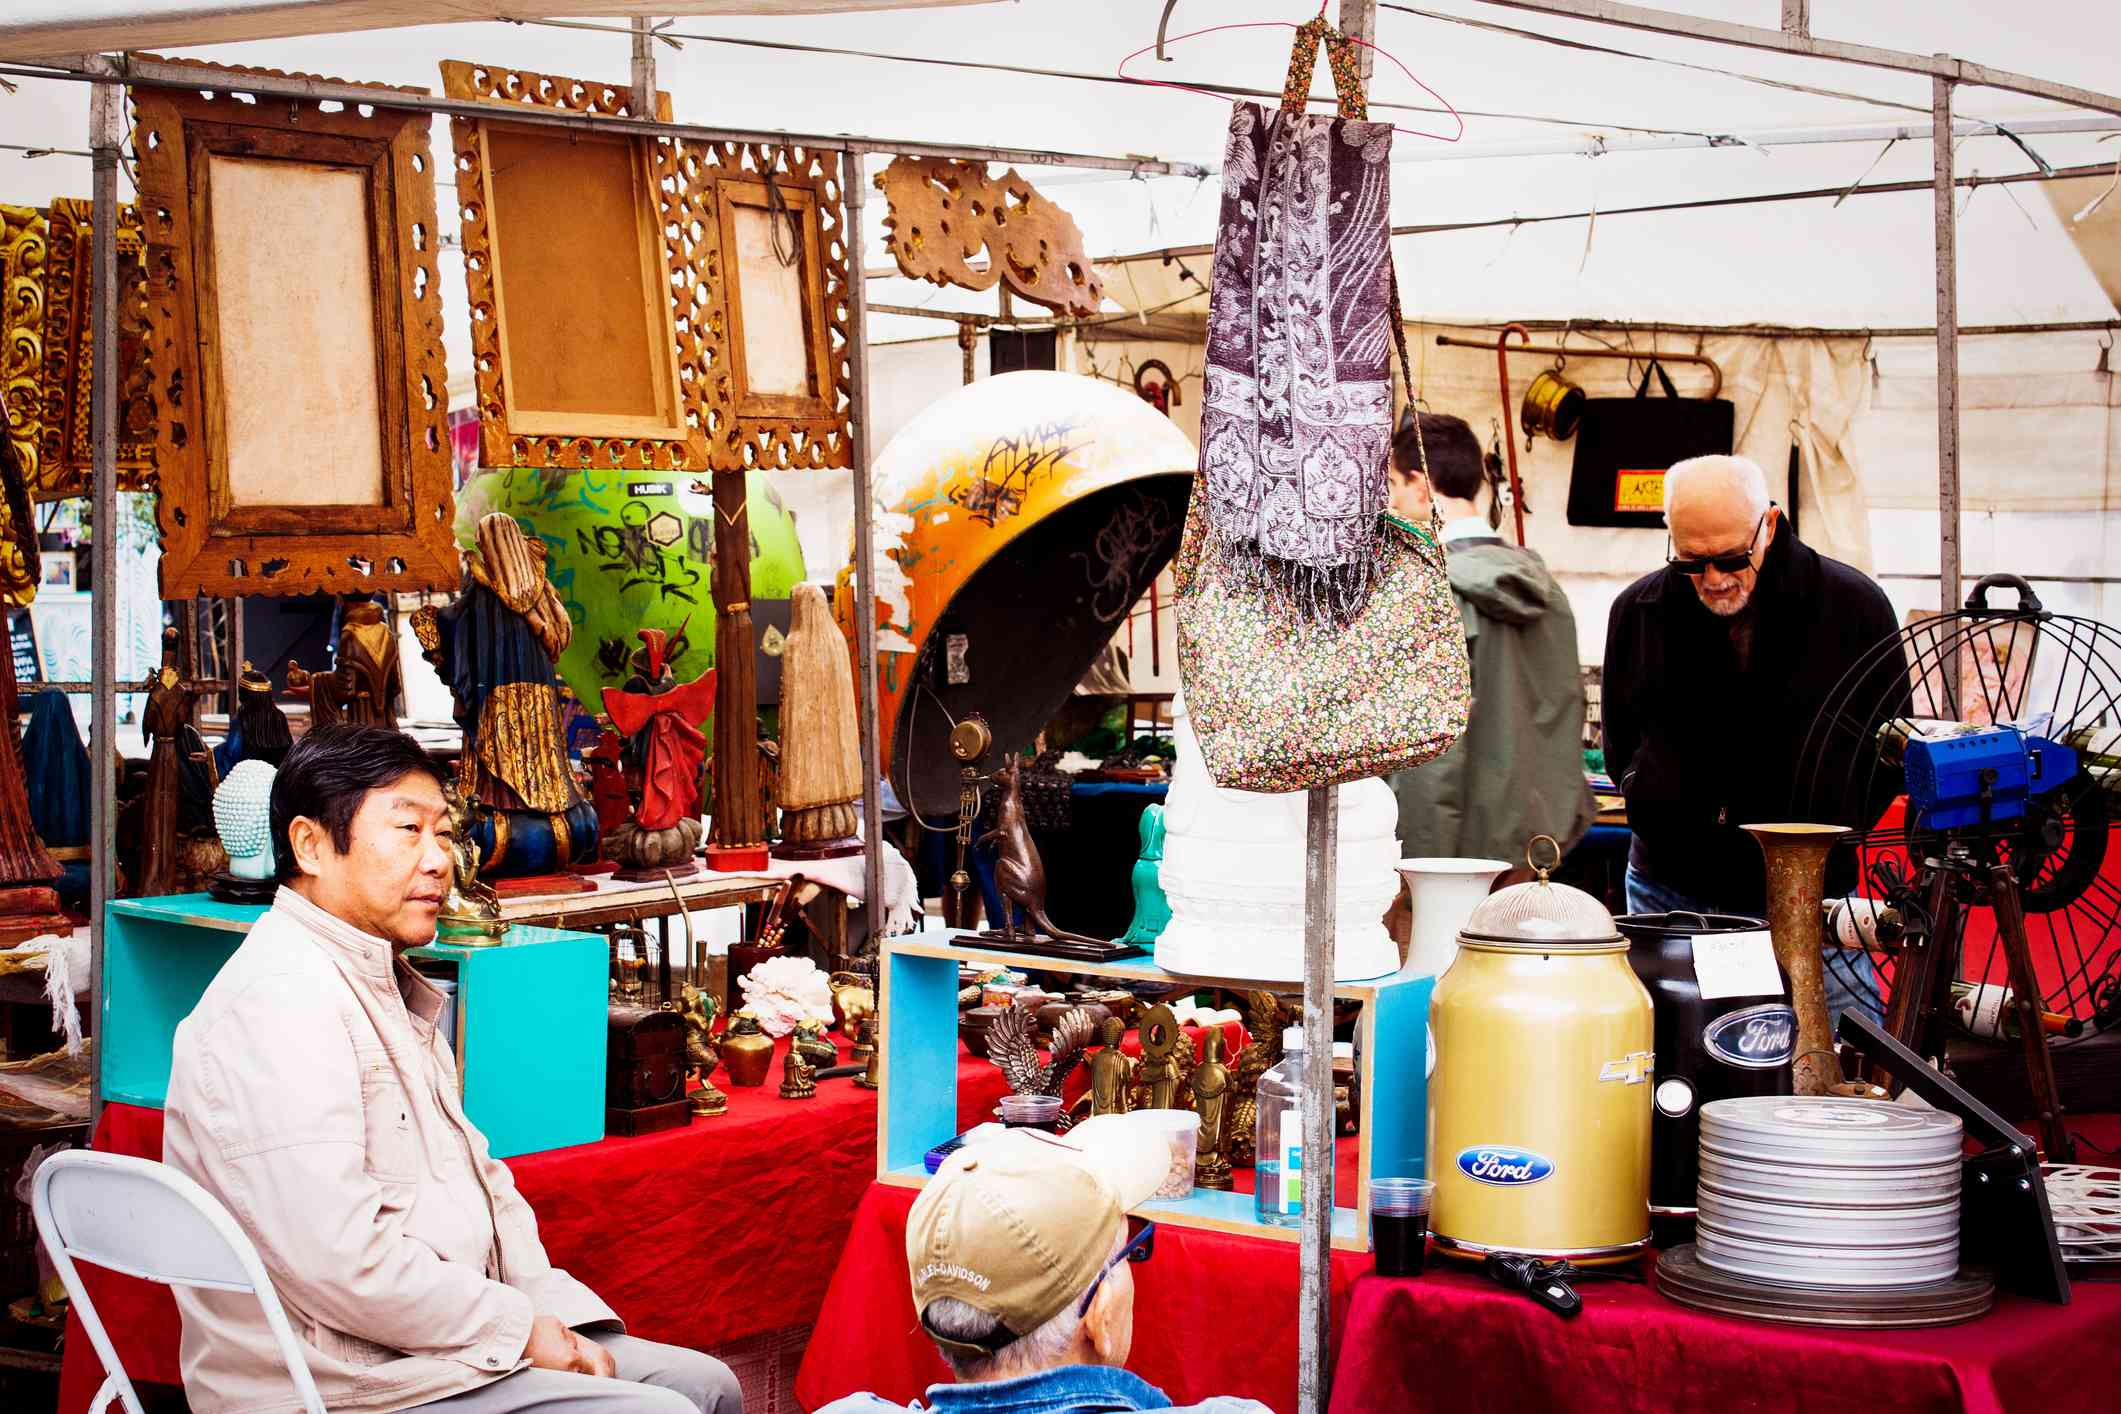 asian man sitting a chair next to an outdoor stall with a variety of objects for sale